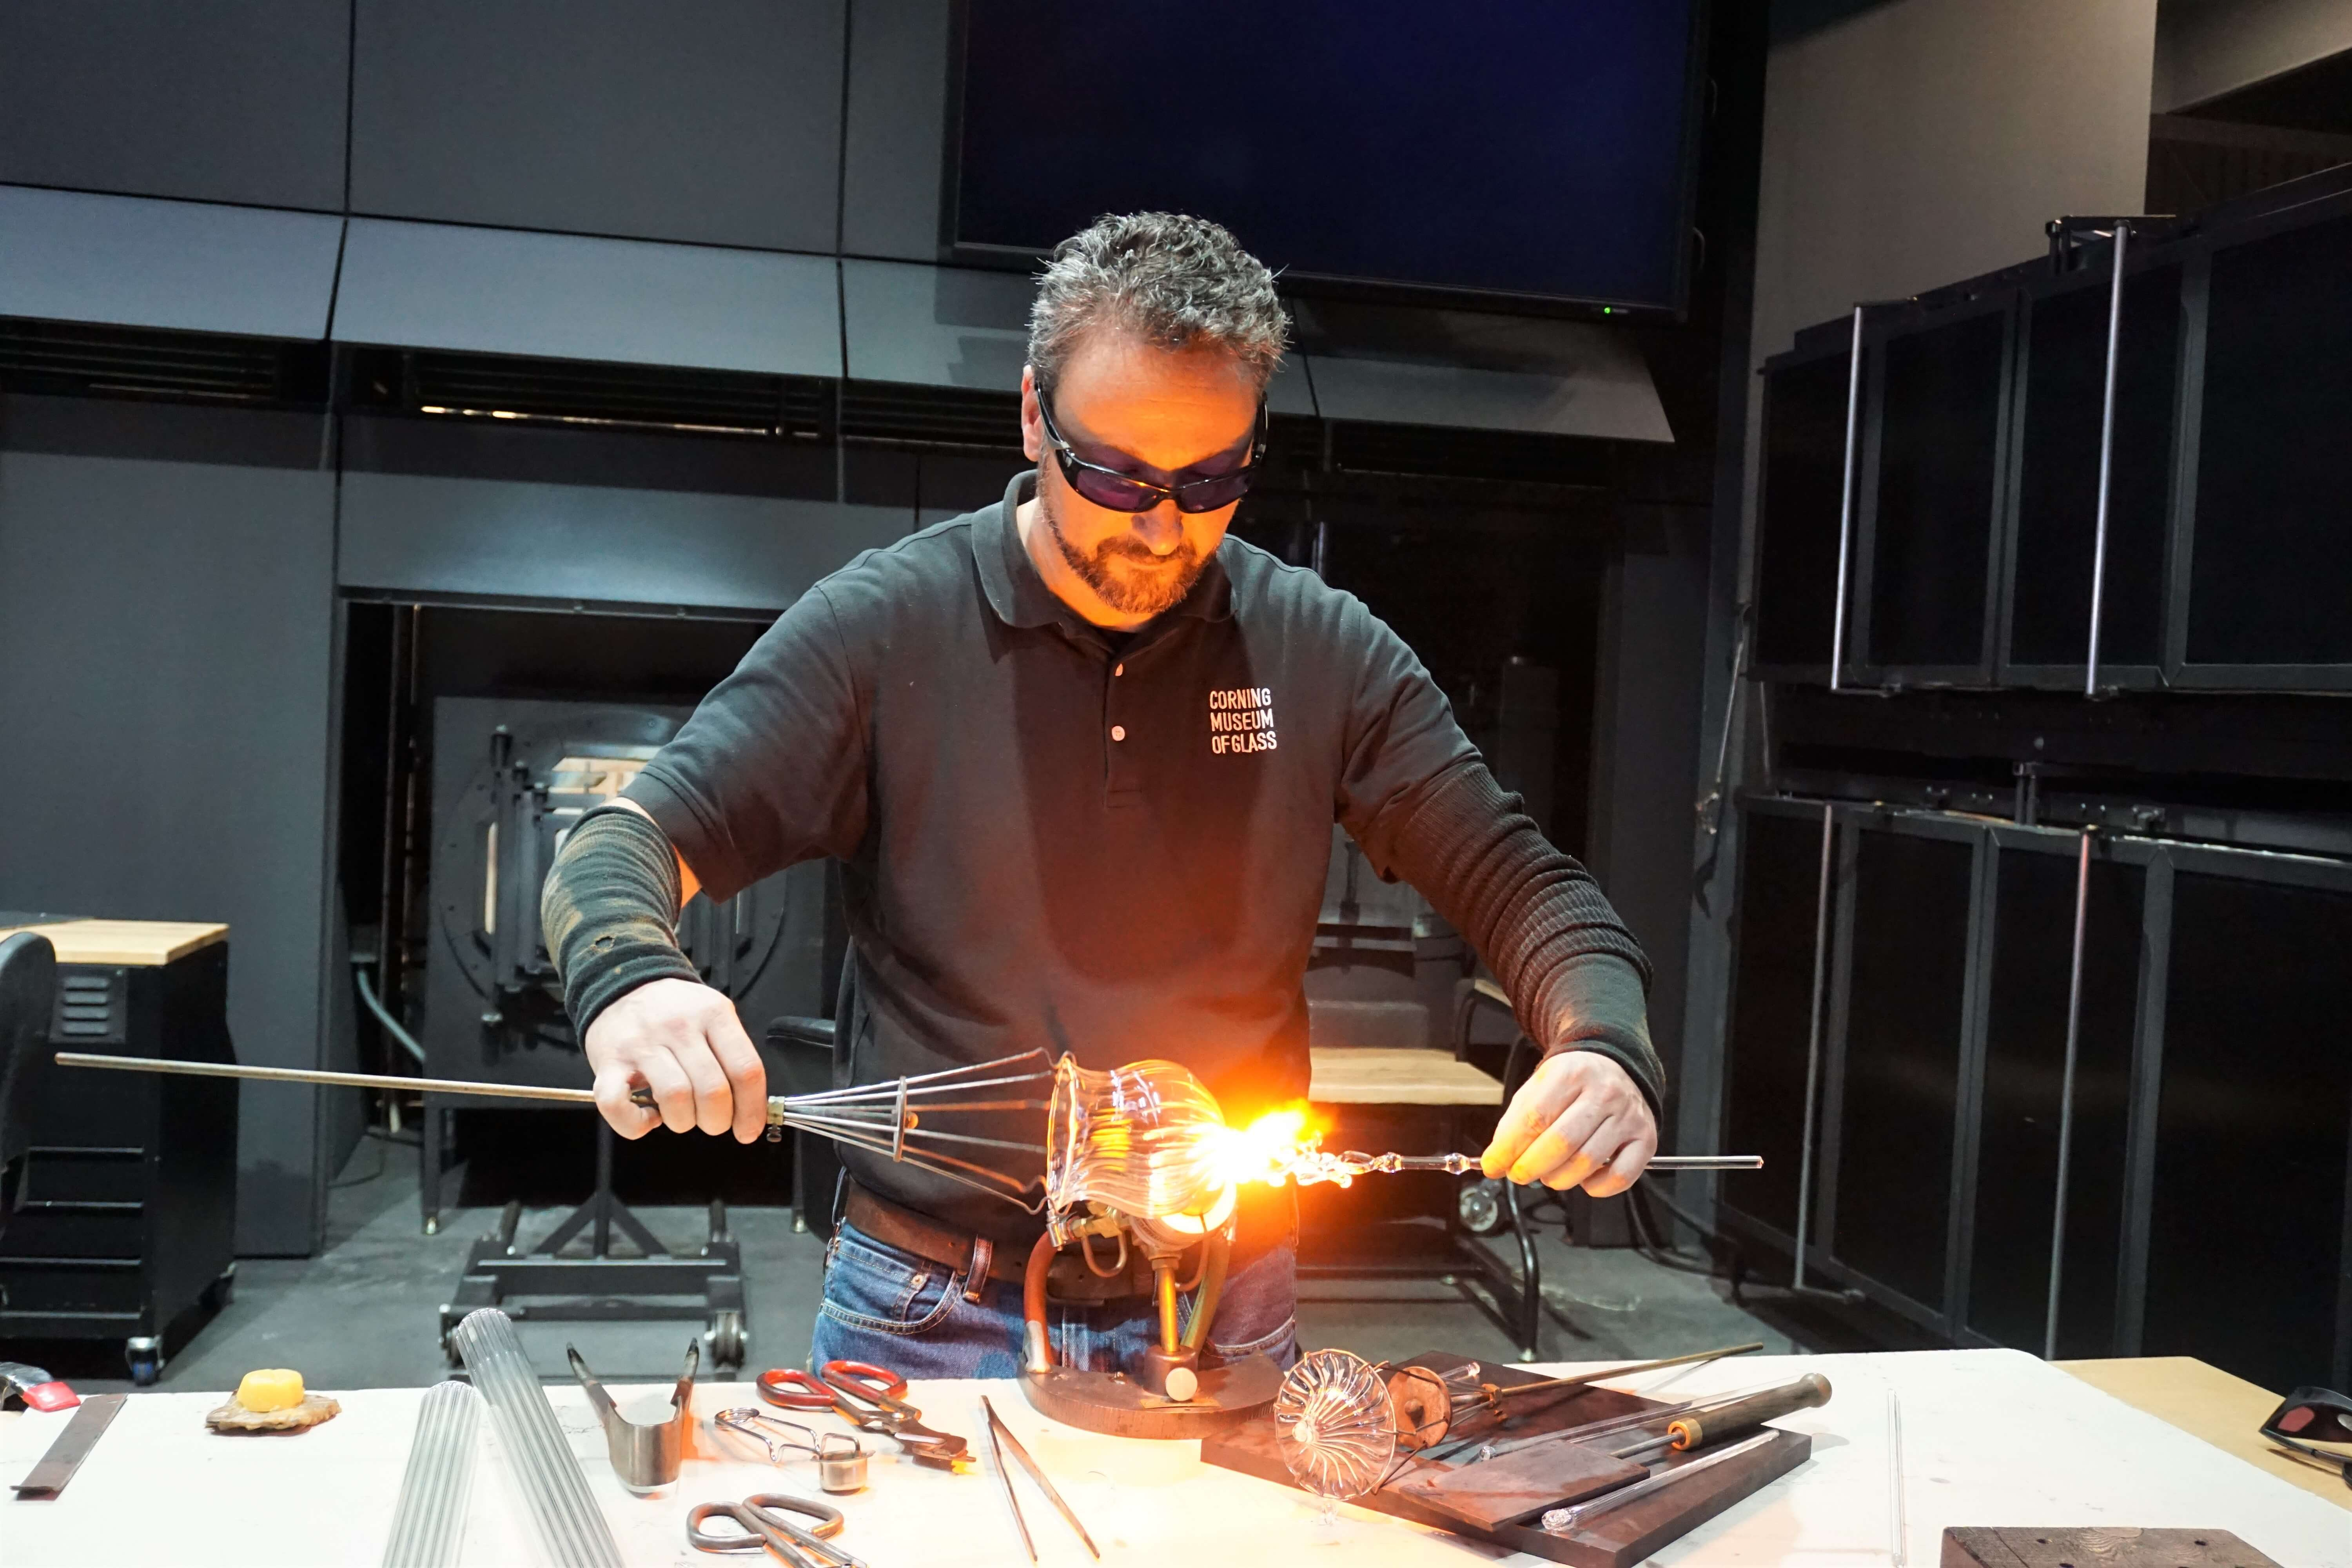 Flameworking demonstration at the Corning Museum of Glass in New York